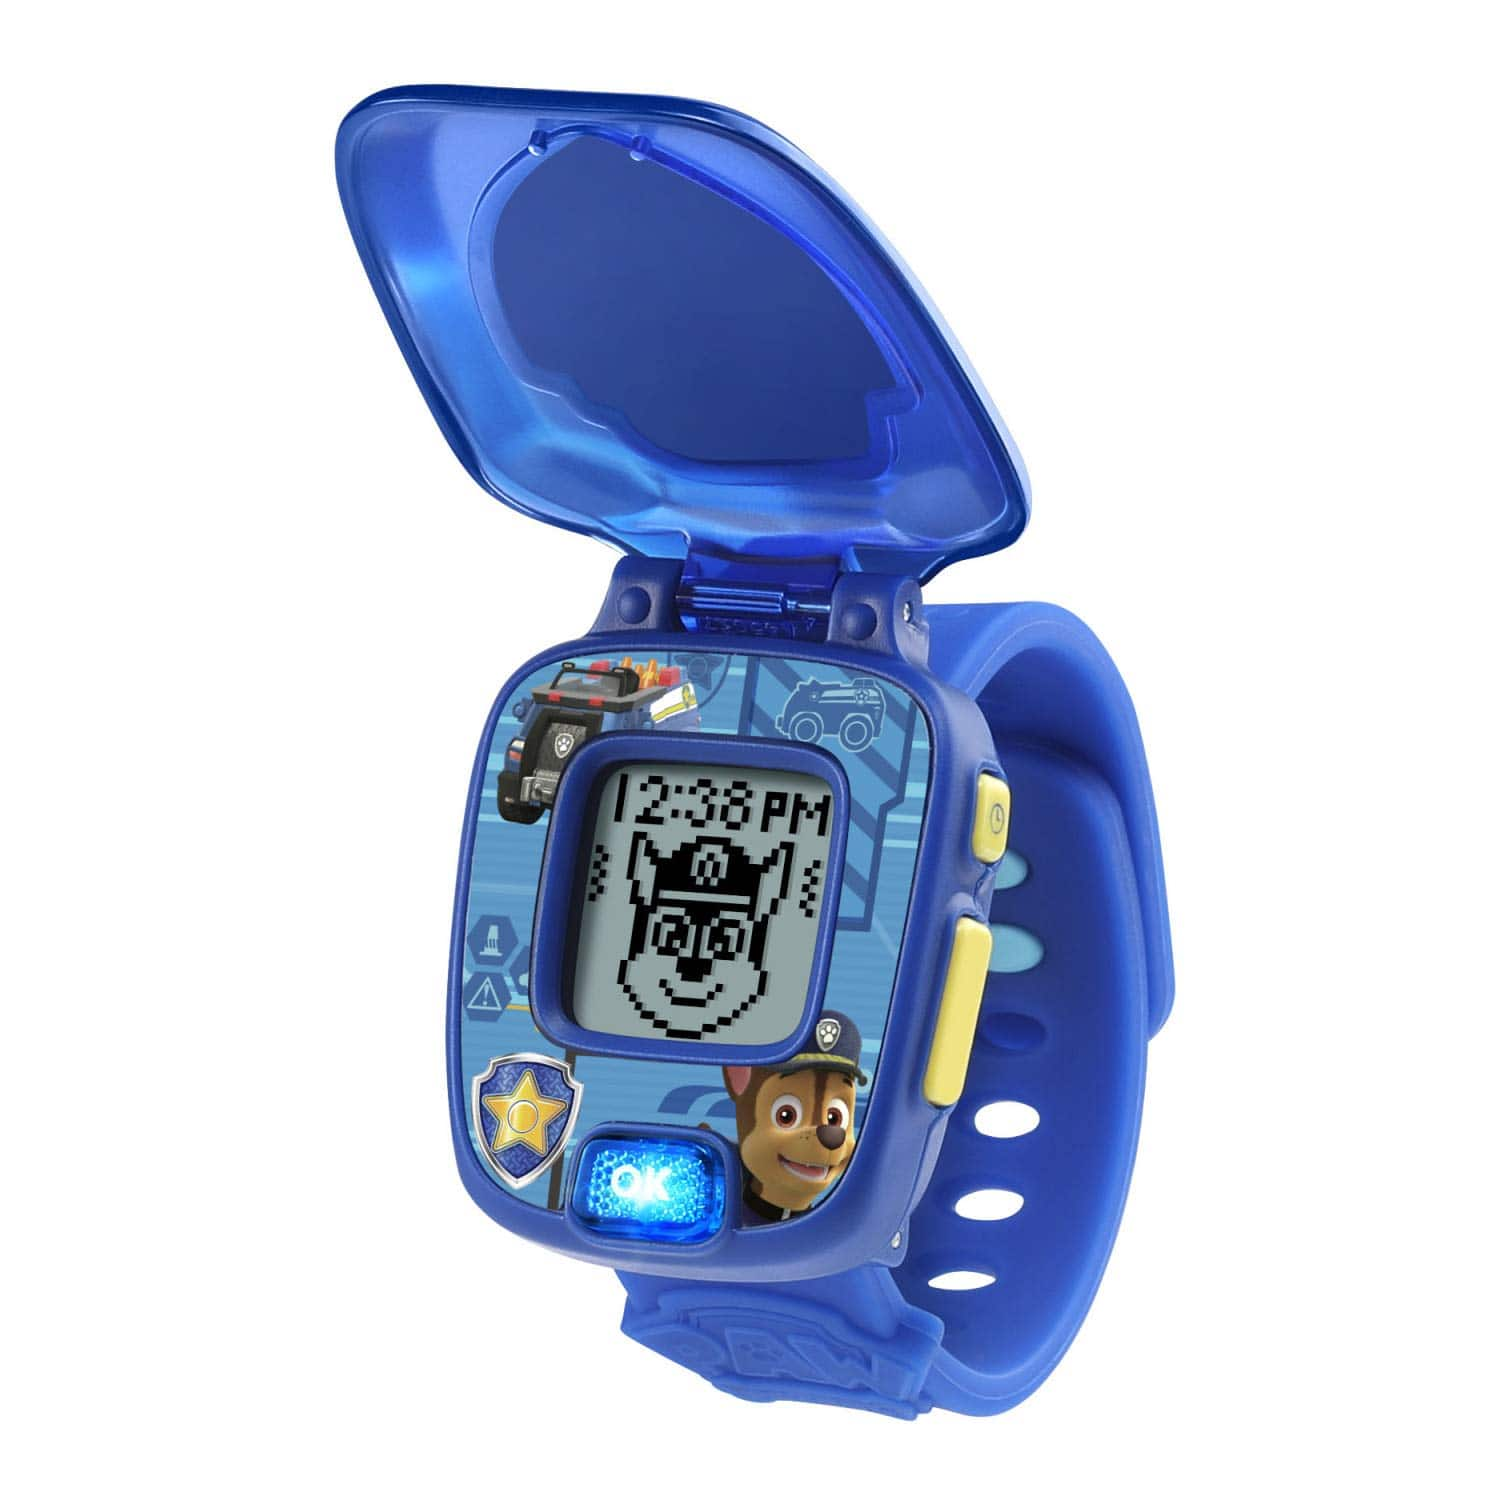 VTech Paw Patrol Electronic Interactive Learning Watch: Marshall $9.85 or Chase